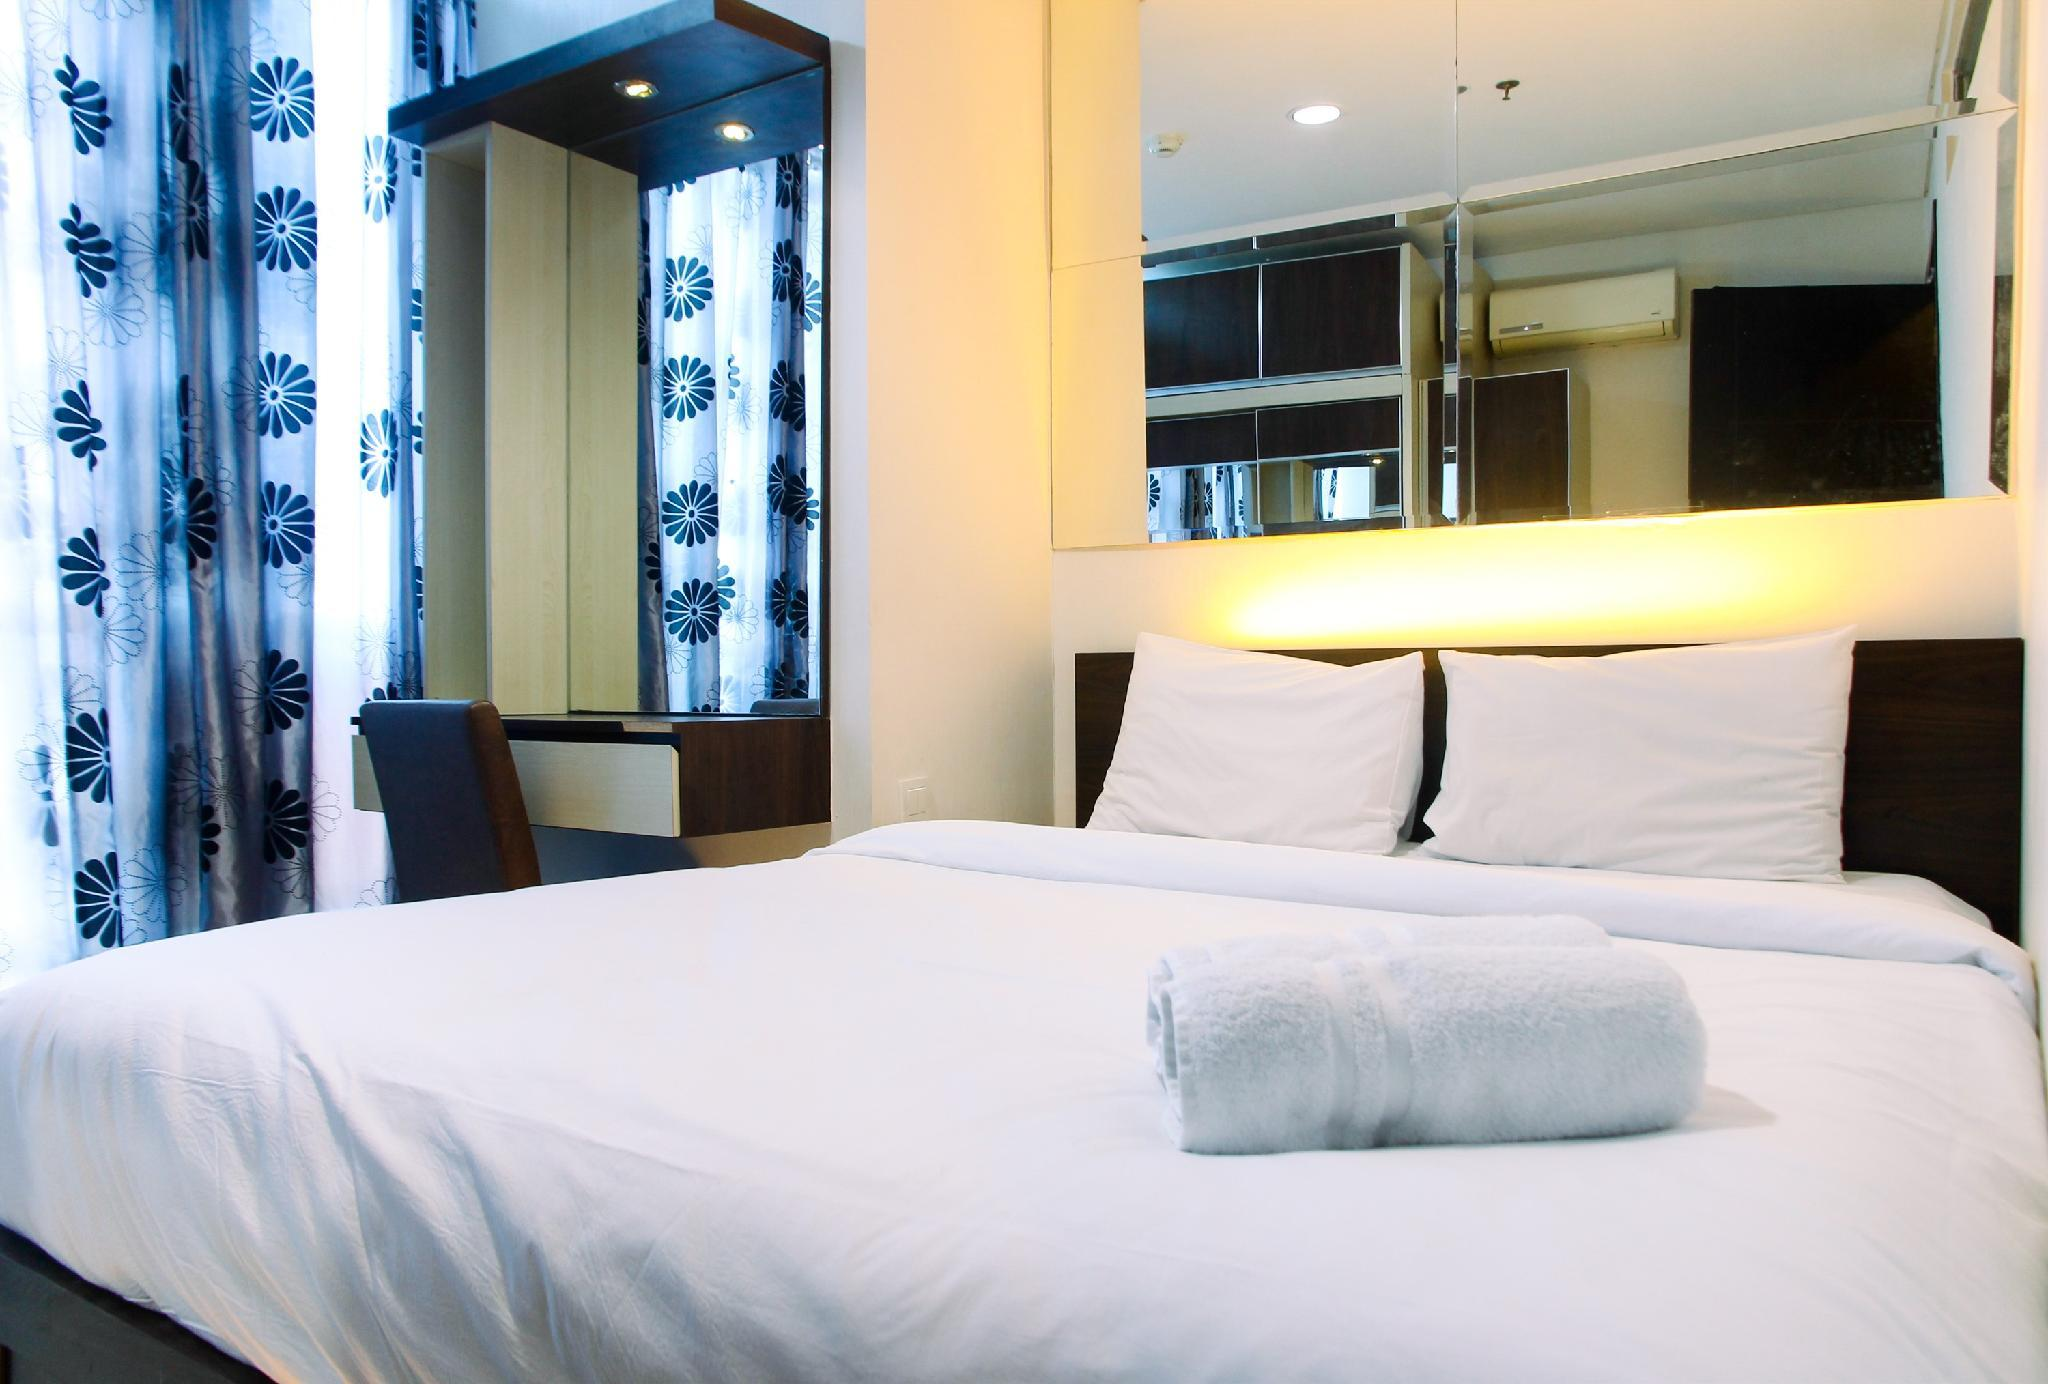 City View 1BR At GP Plaza Apartment By Travelio